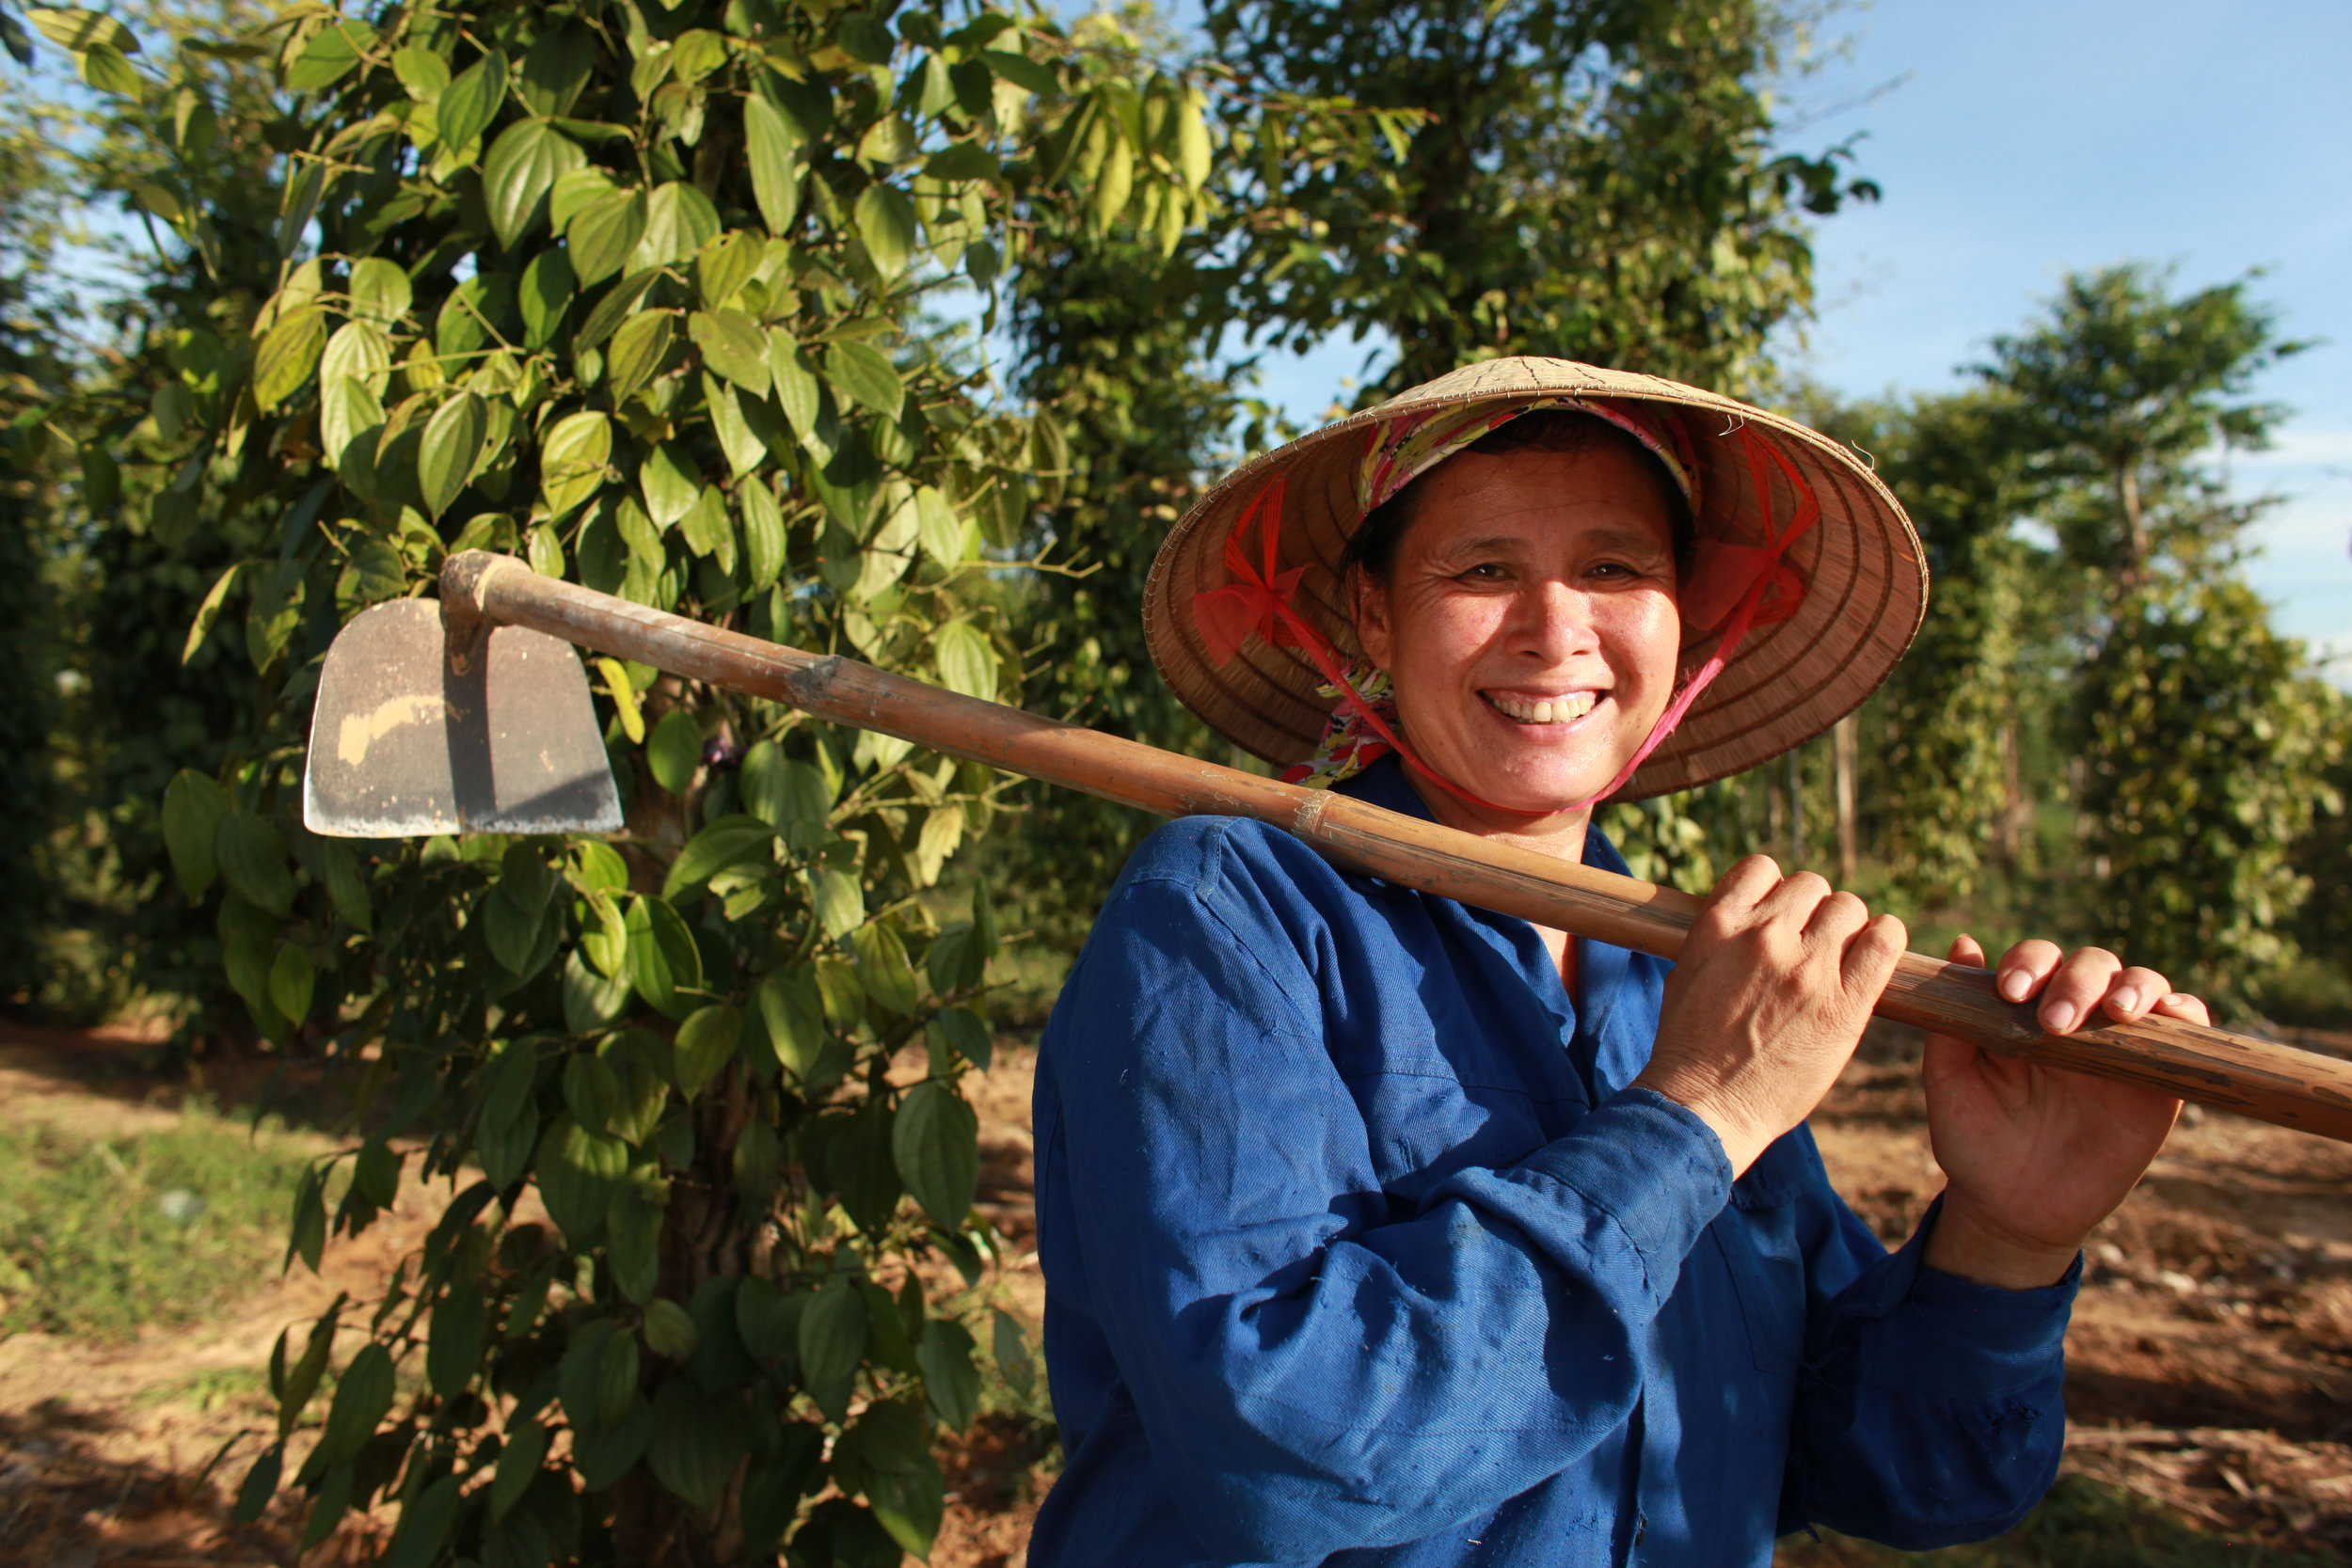 Roots-of-Peace-ROP-agriculture-farmer-Vietnam-smile.JPG